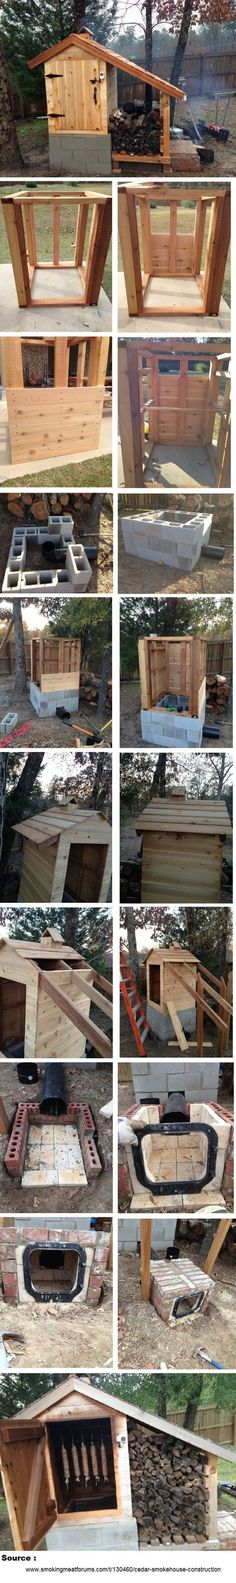 Learn How To Build A Smokehouse With This Awesome Project